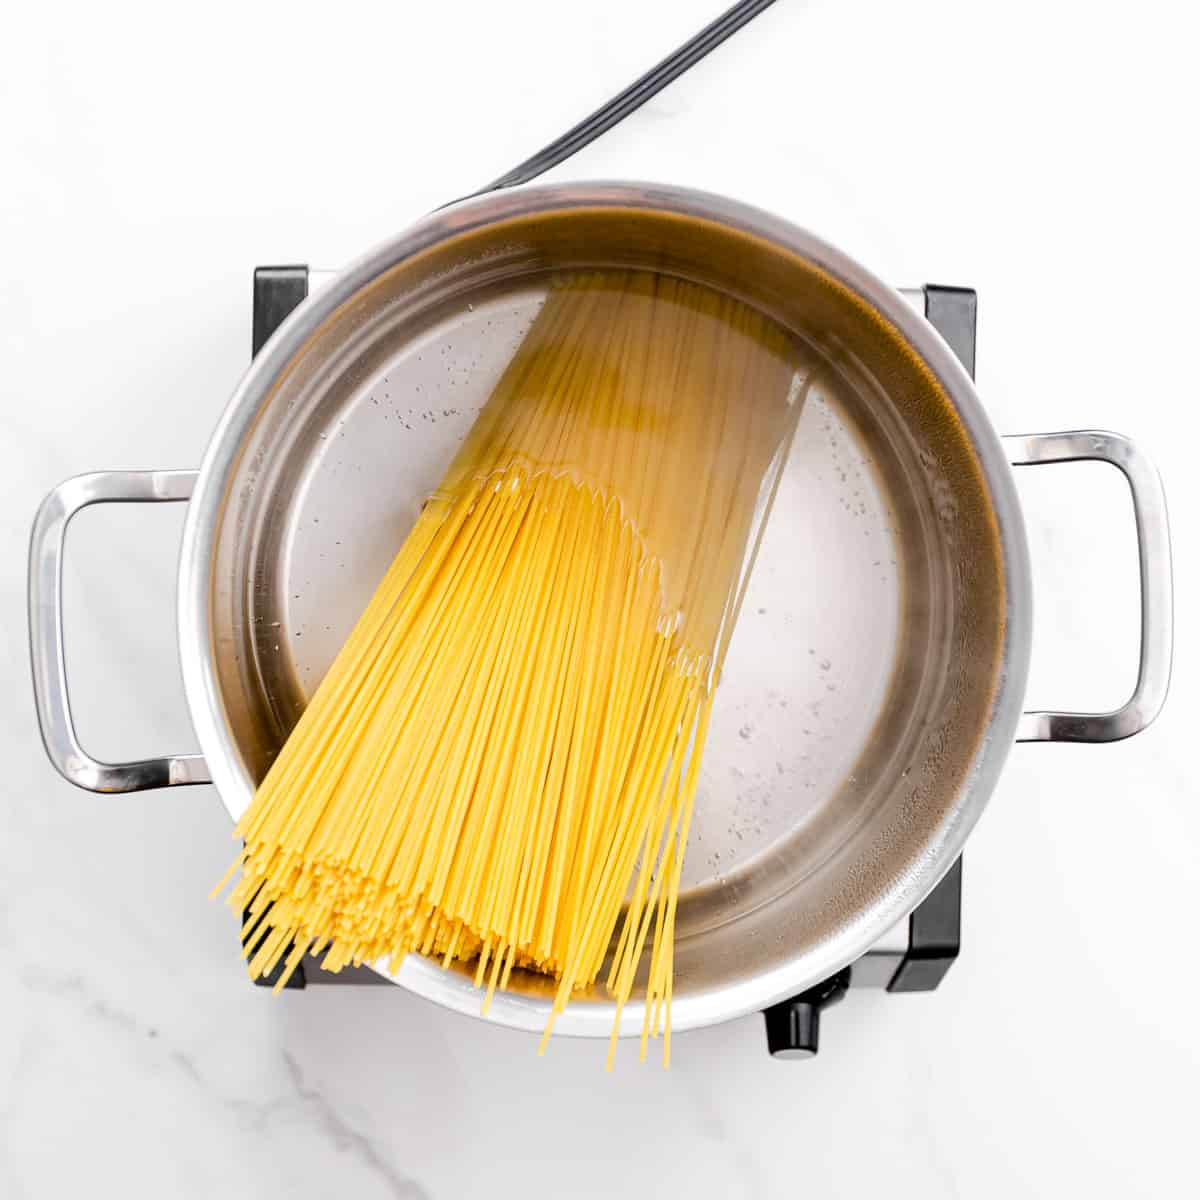 cook the pasta in salted boiling water until it's slightly undercooked.